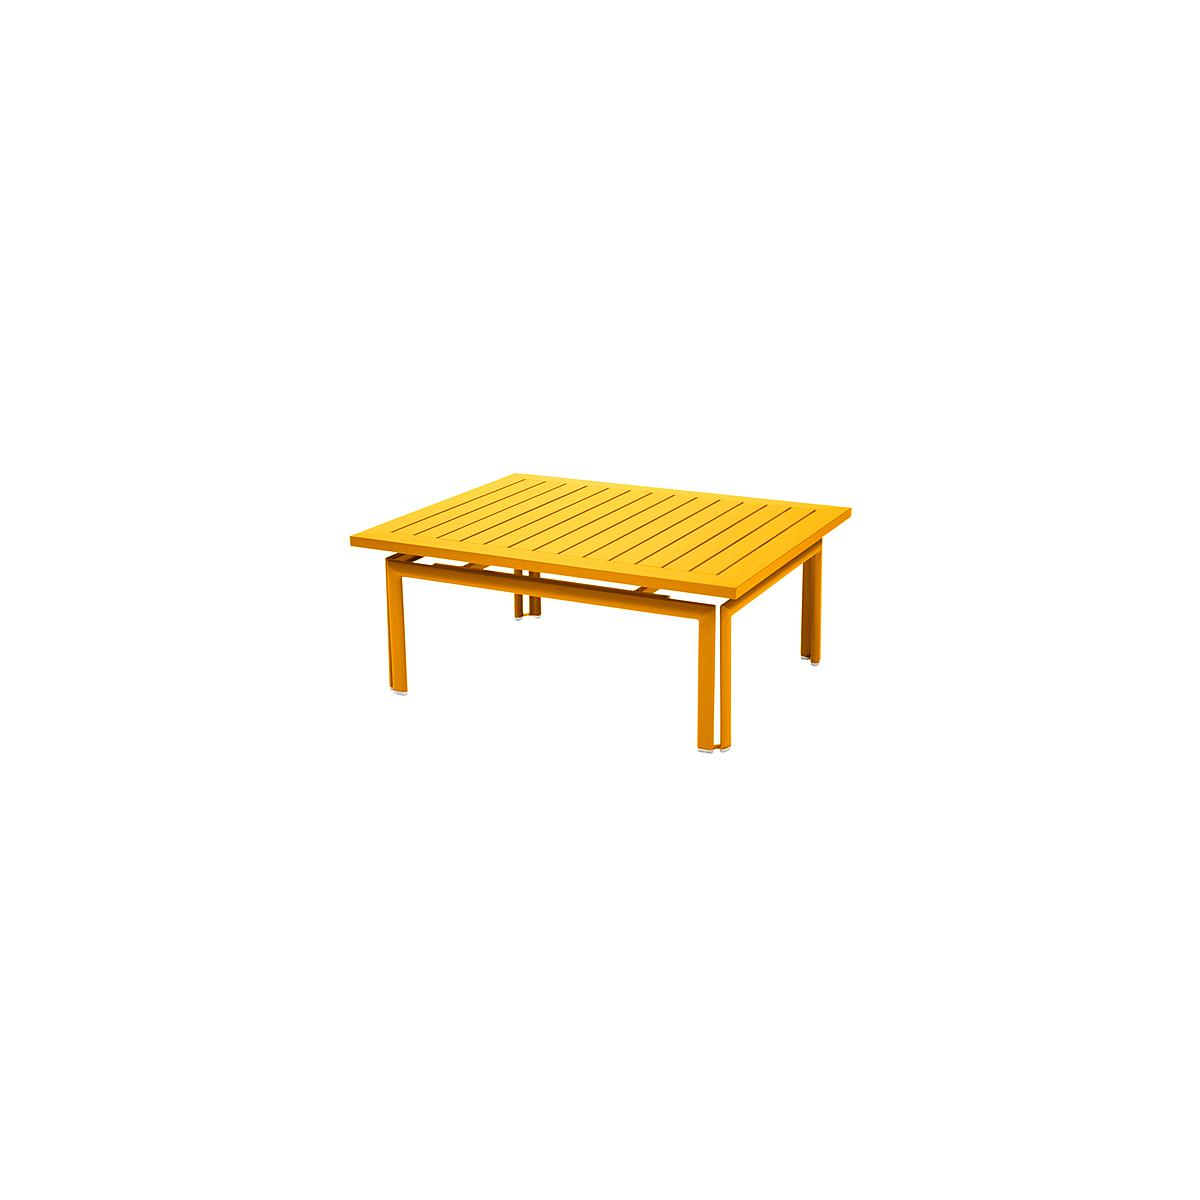 COSTA by Fermob Table basse Jaune miel